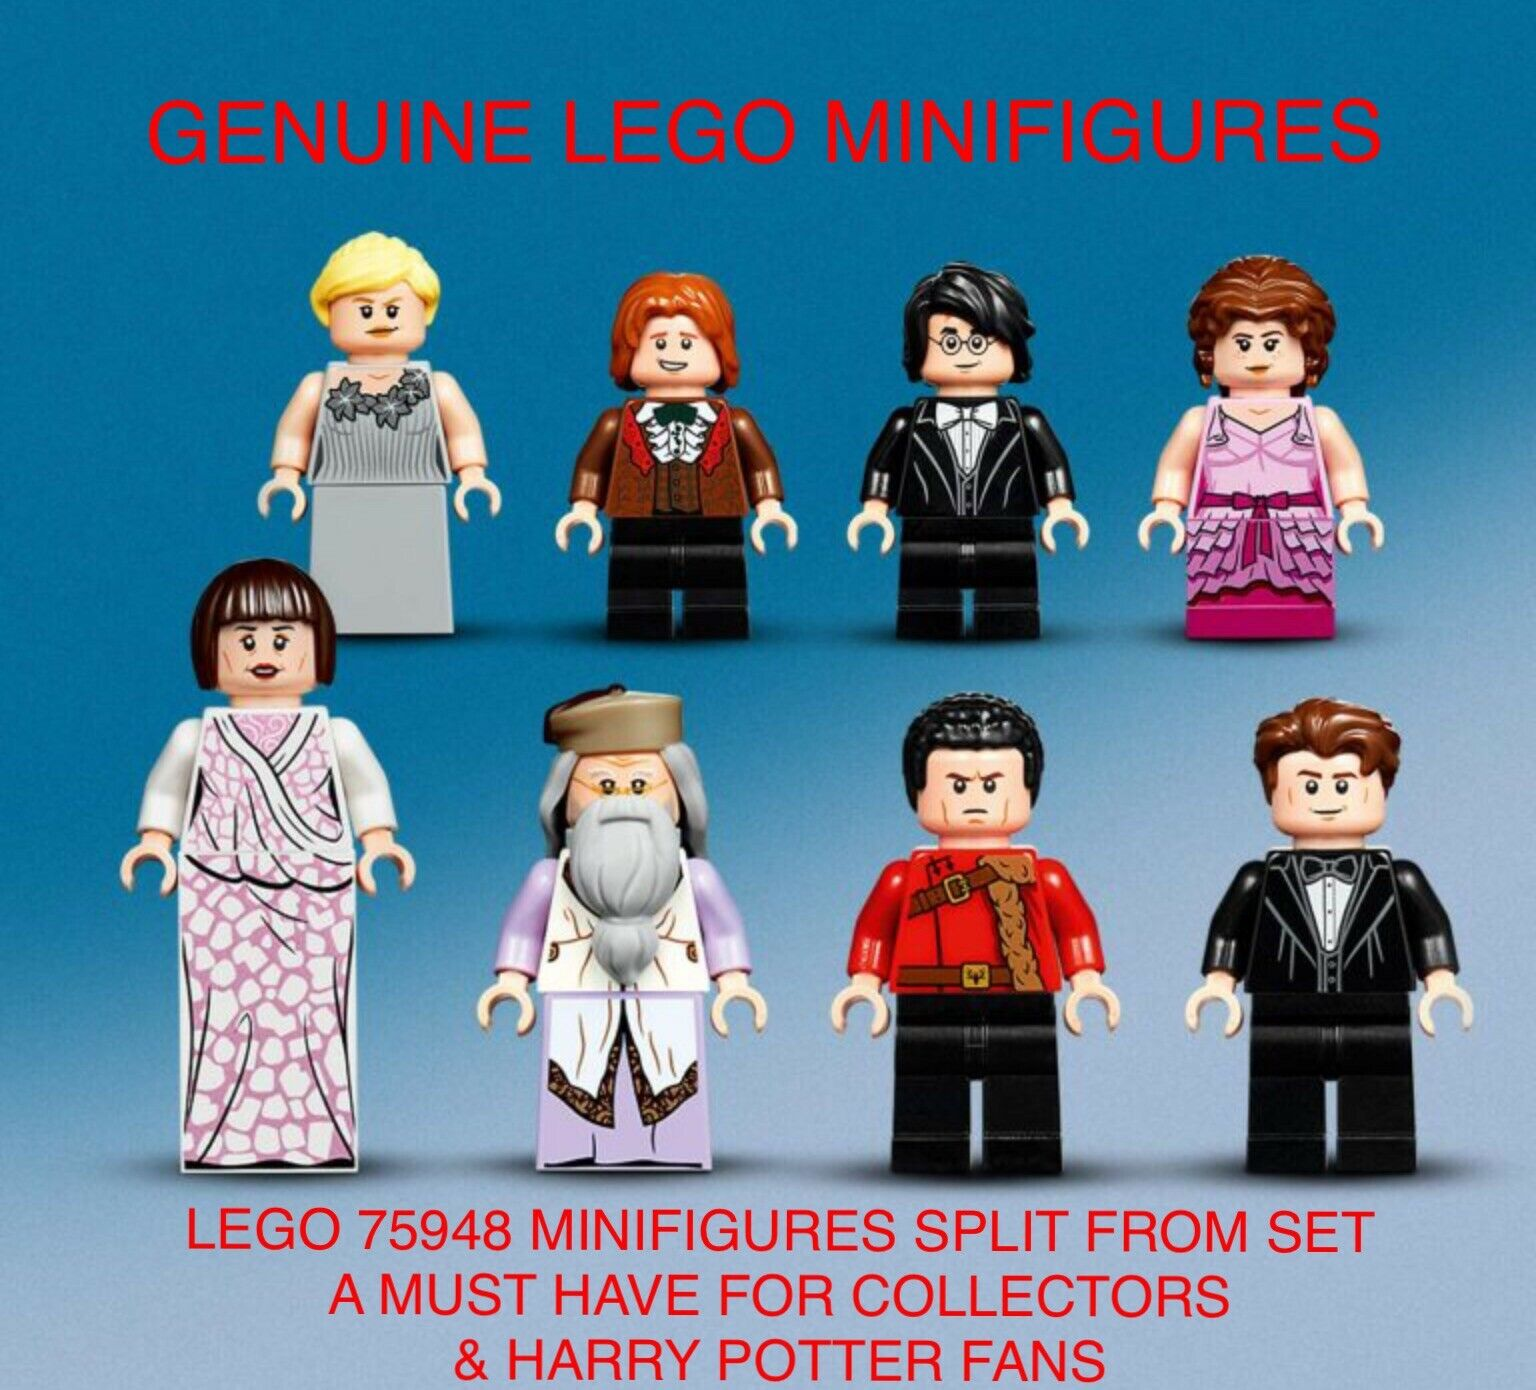 8 X LEGO MINIFIGURES SPLIT FROM SET 75948 - HARRY POTTER. B NEW. MUST HAVE. (H)